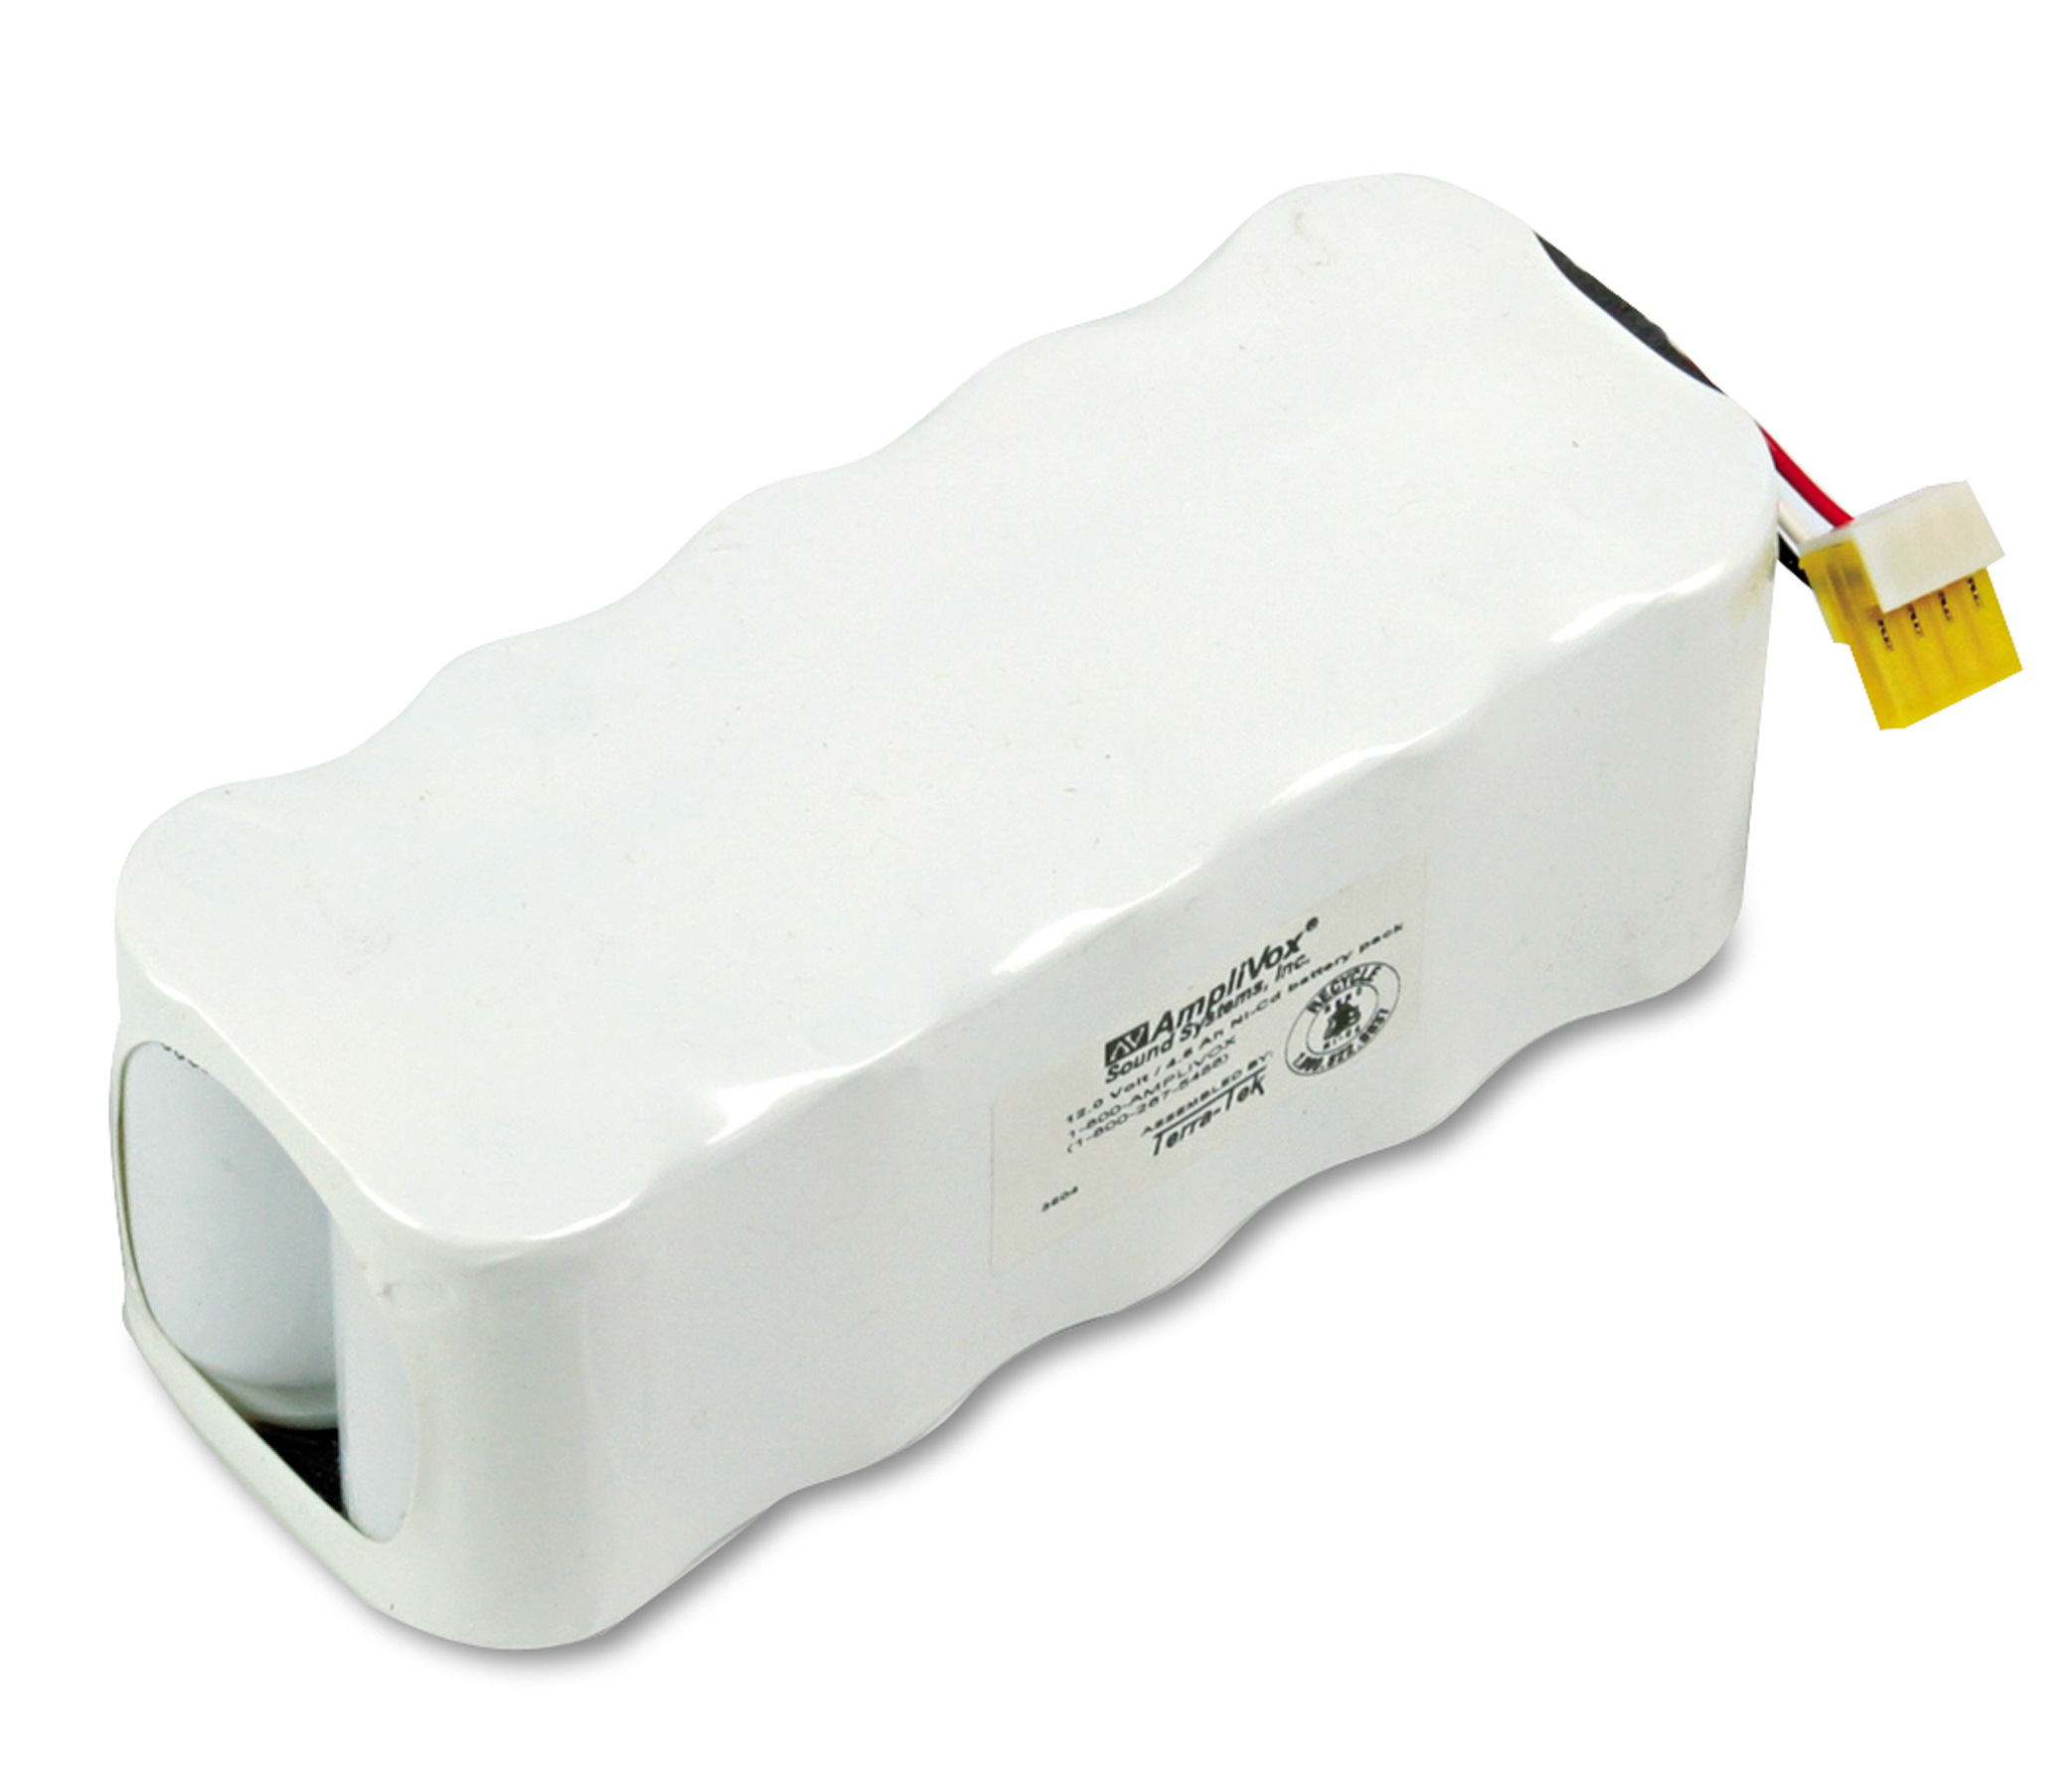 Amplivox S1465 NiCad Battery Pack for S805A and SW805A Amplifiers